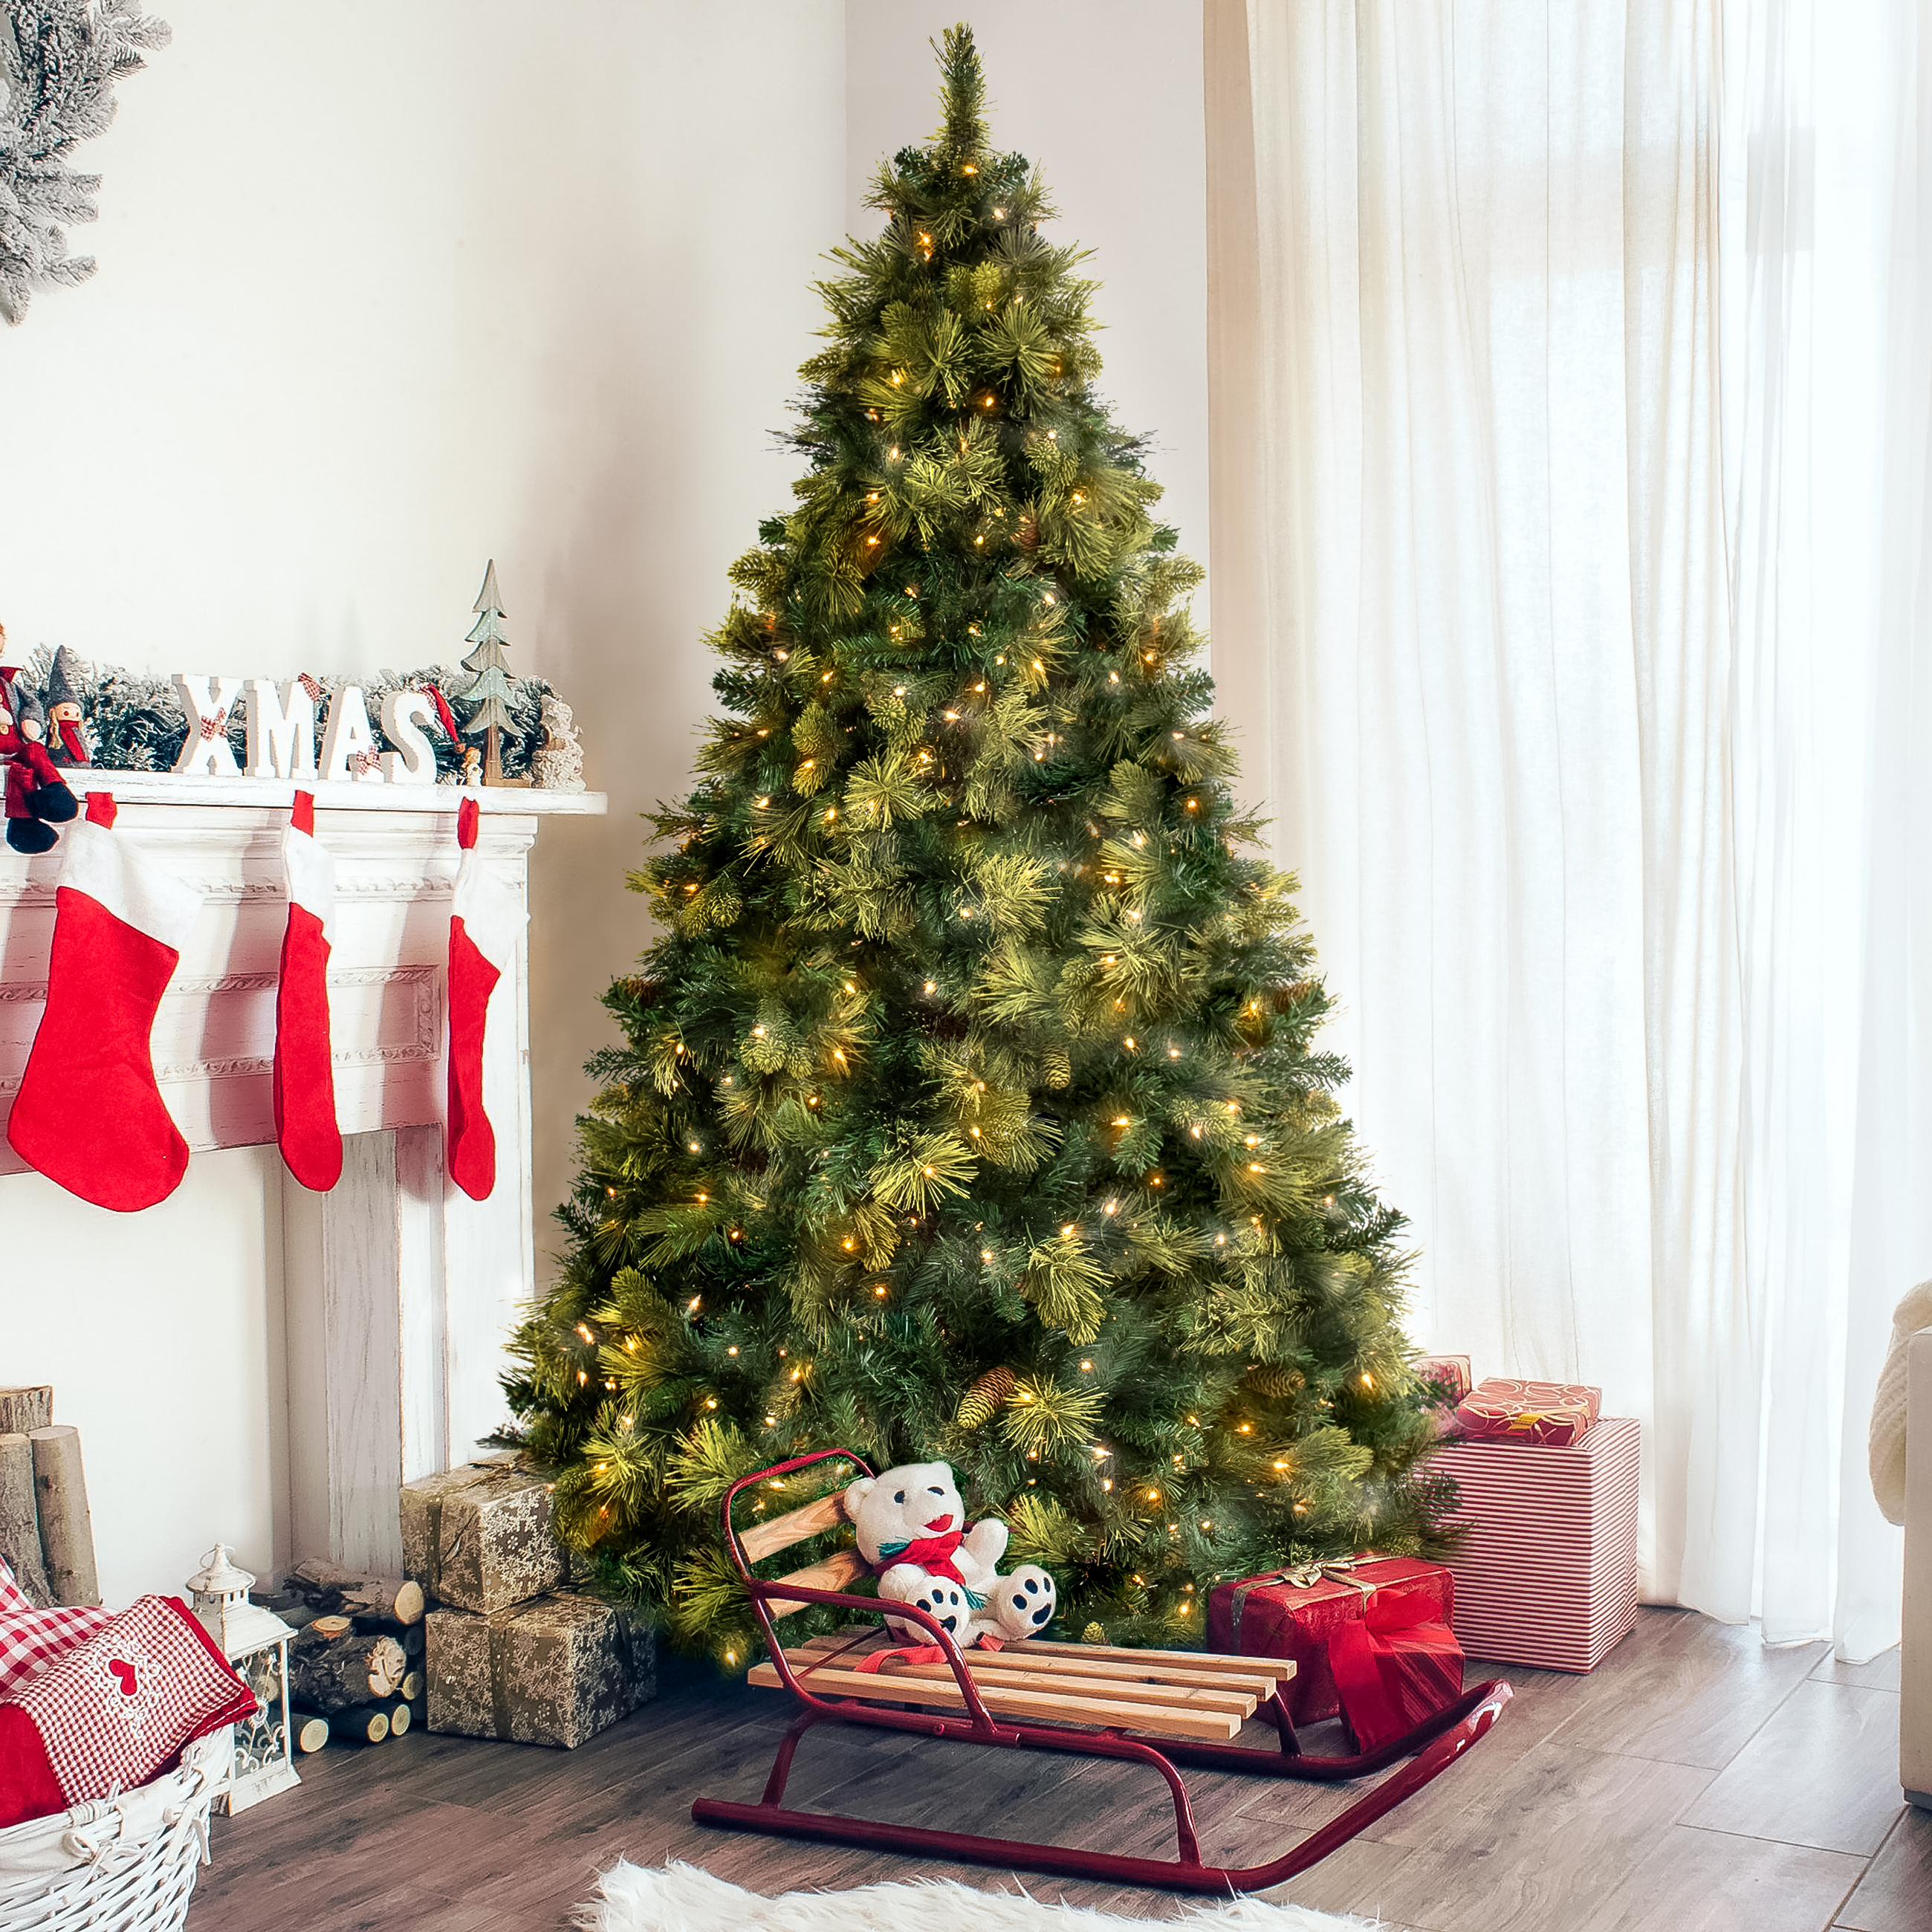 Best Choice Products 7.5ft Pre-Lit Premium Faux Hinged Artificial Christmas Pine Tree w/ 86 Flocked Cones, 750 UL Certified Lights, Stand - Green